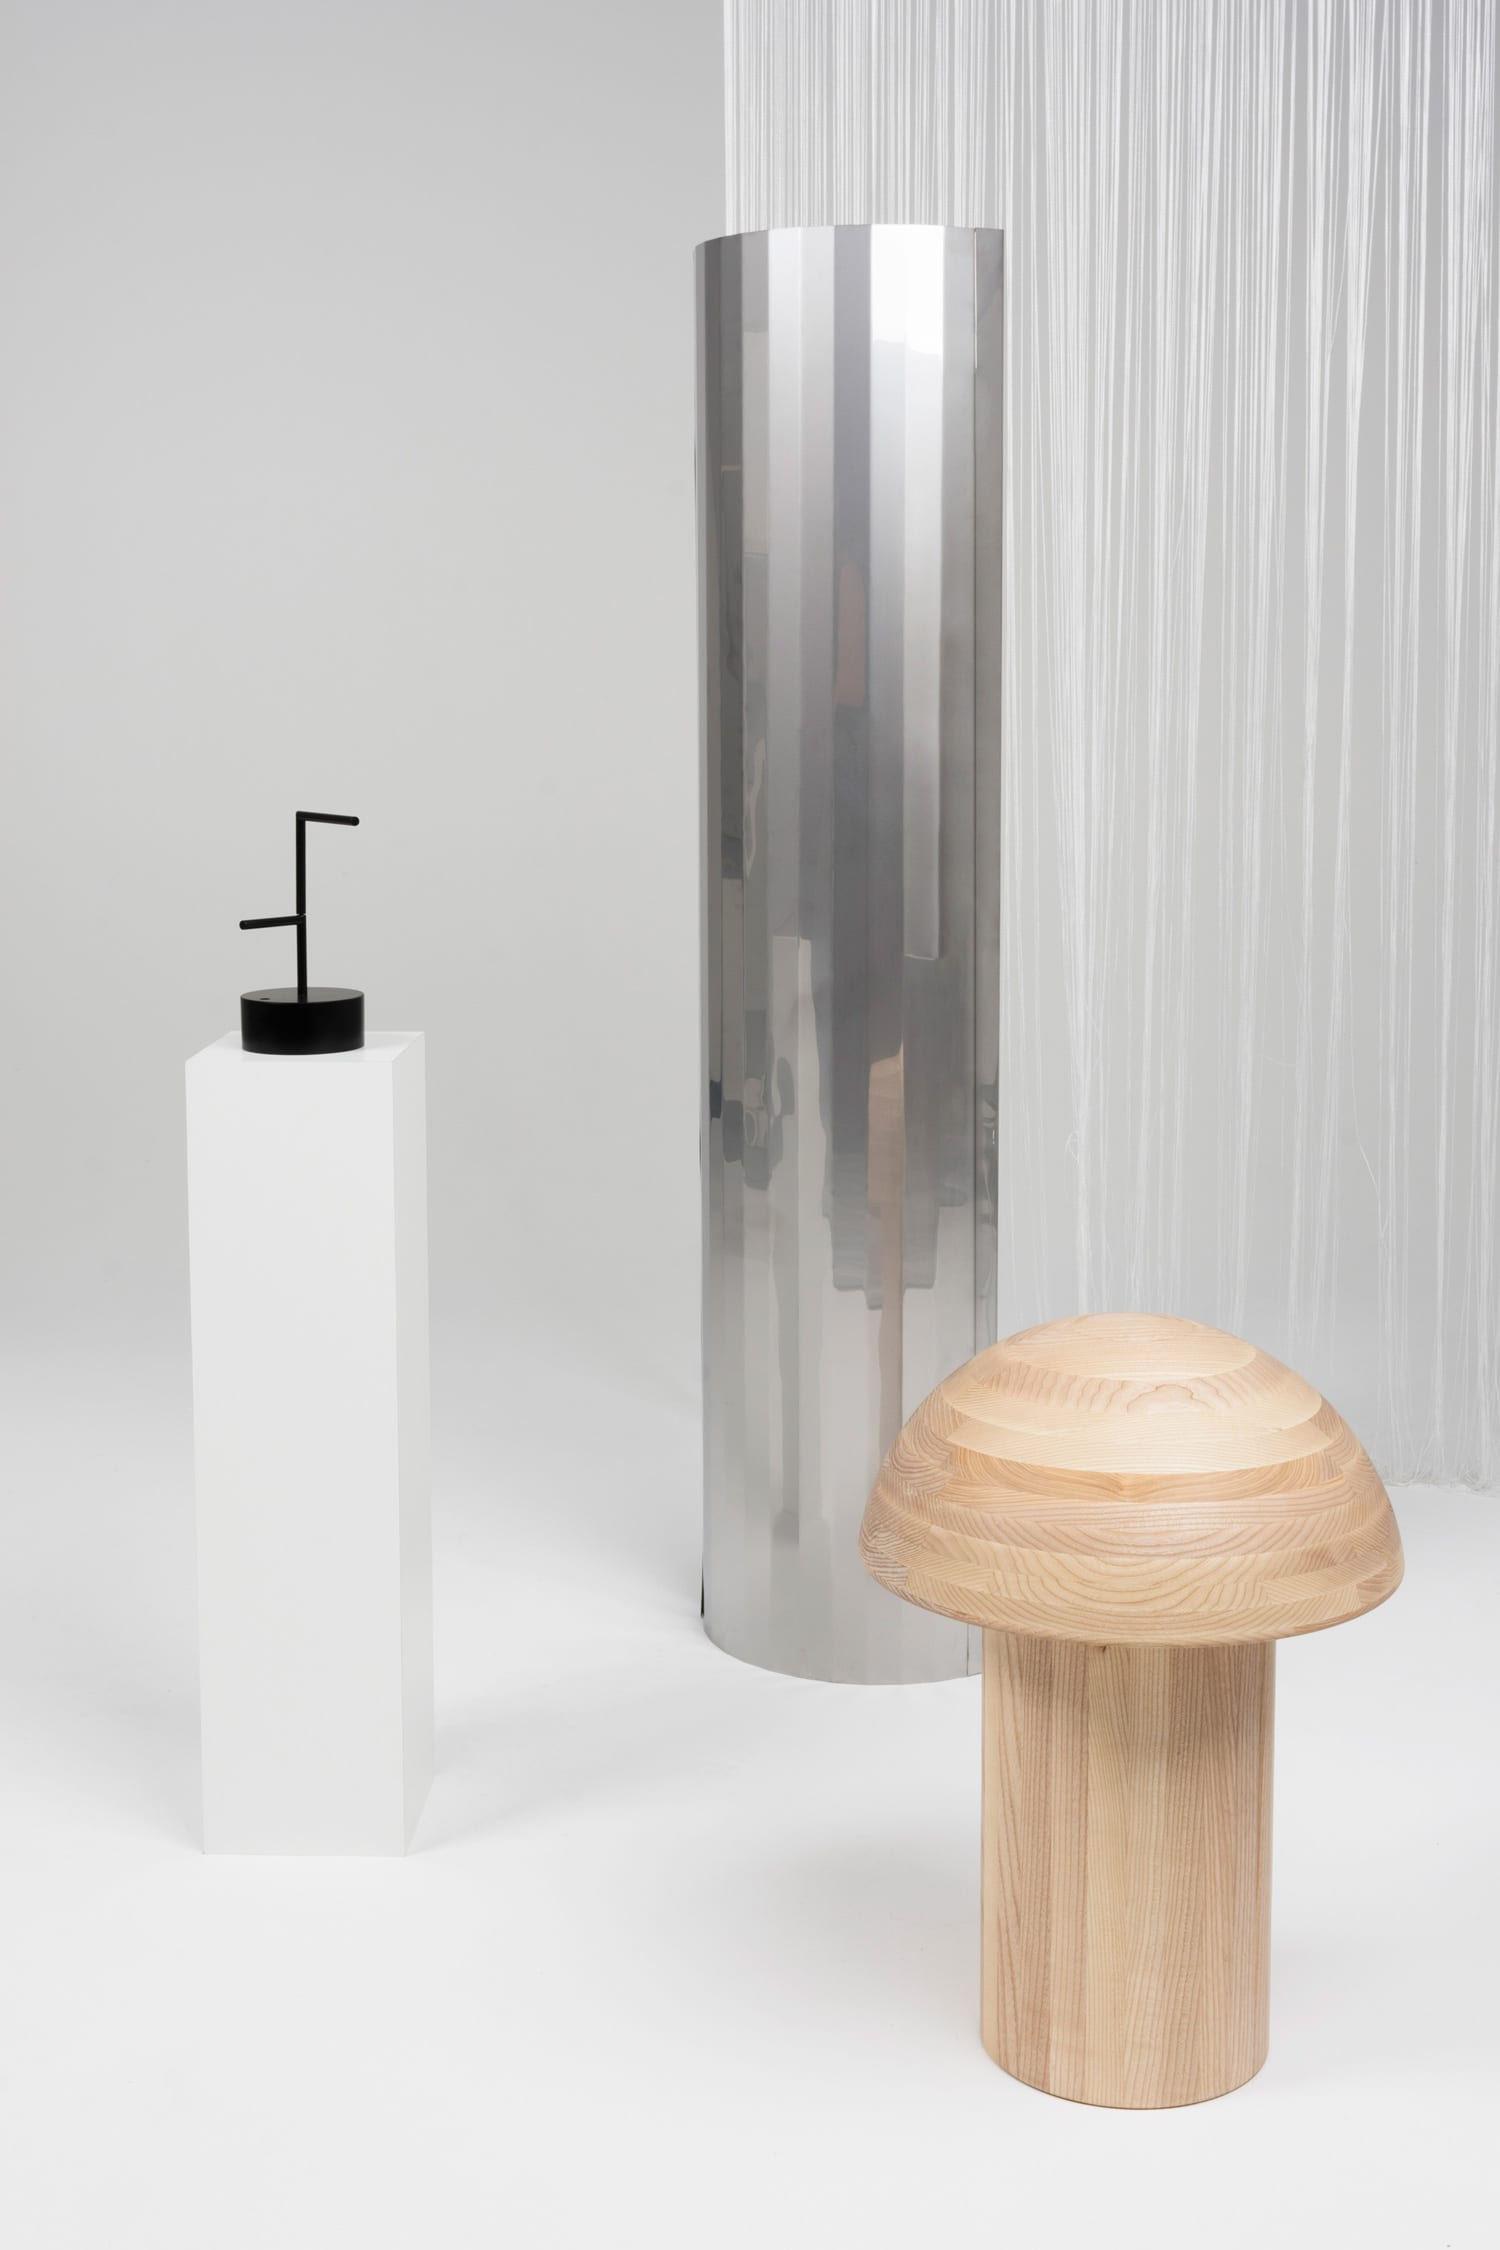 Produktreih Hyperreal by Pia Regenbrecht at Pure Talents Contest, IMM Cologne 2018 | Yellowtrace